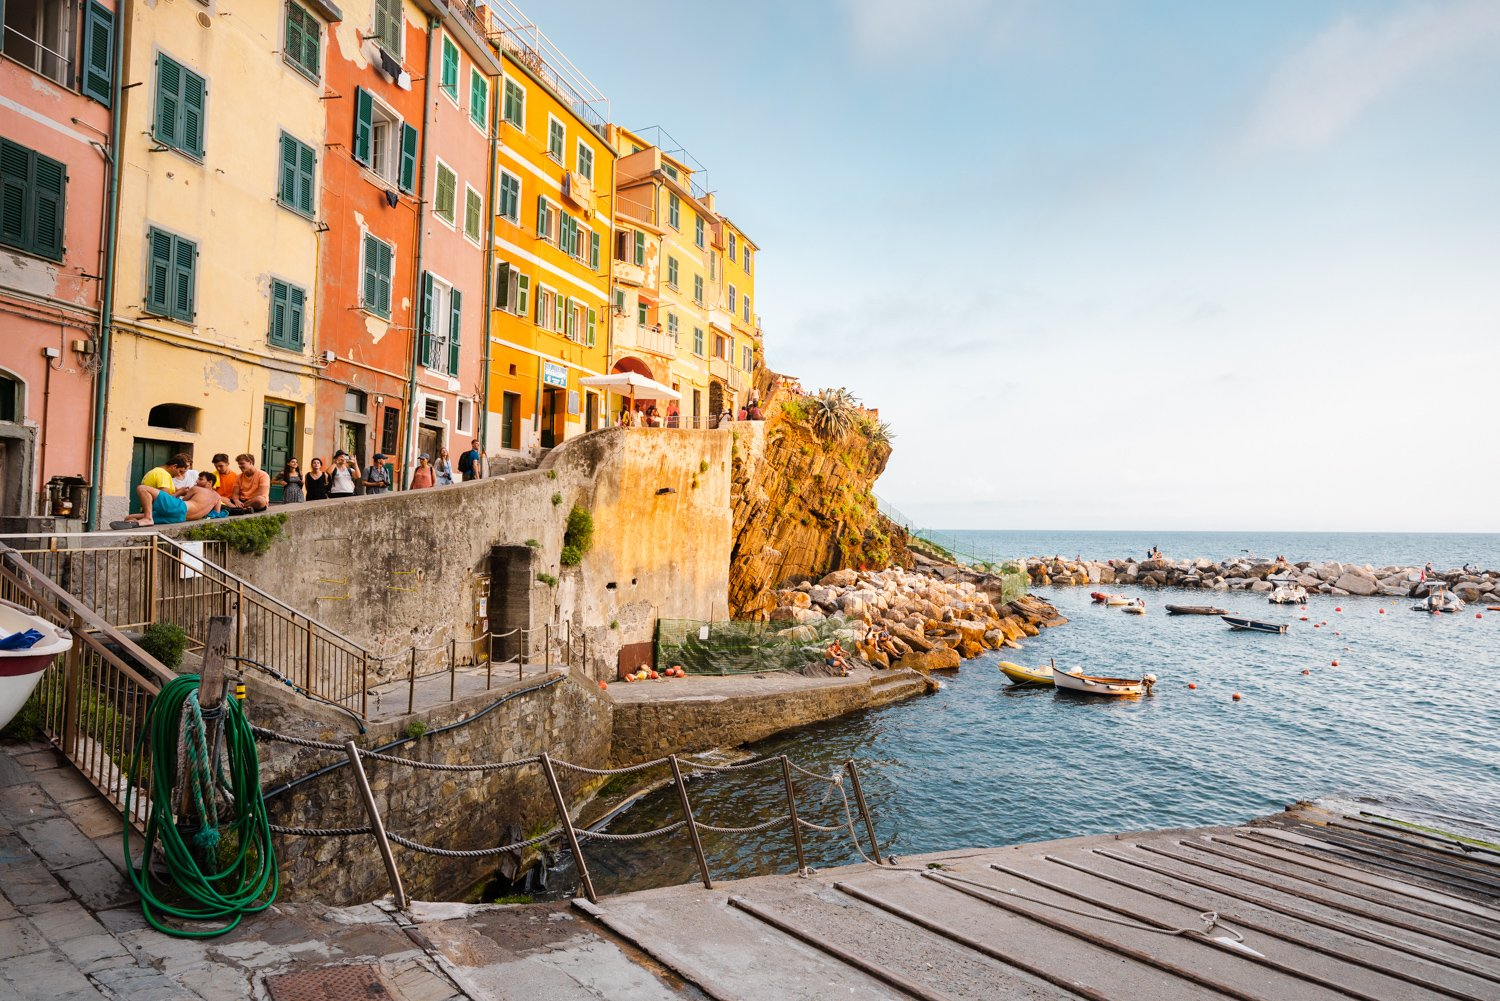 Slipway and people walking along ocean in Riomaggiore